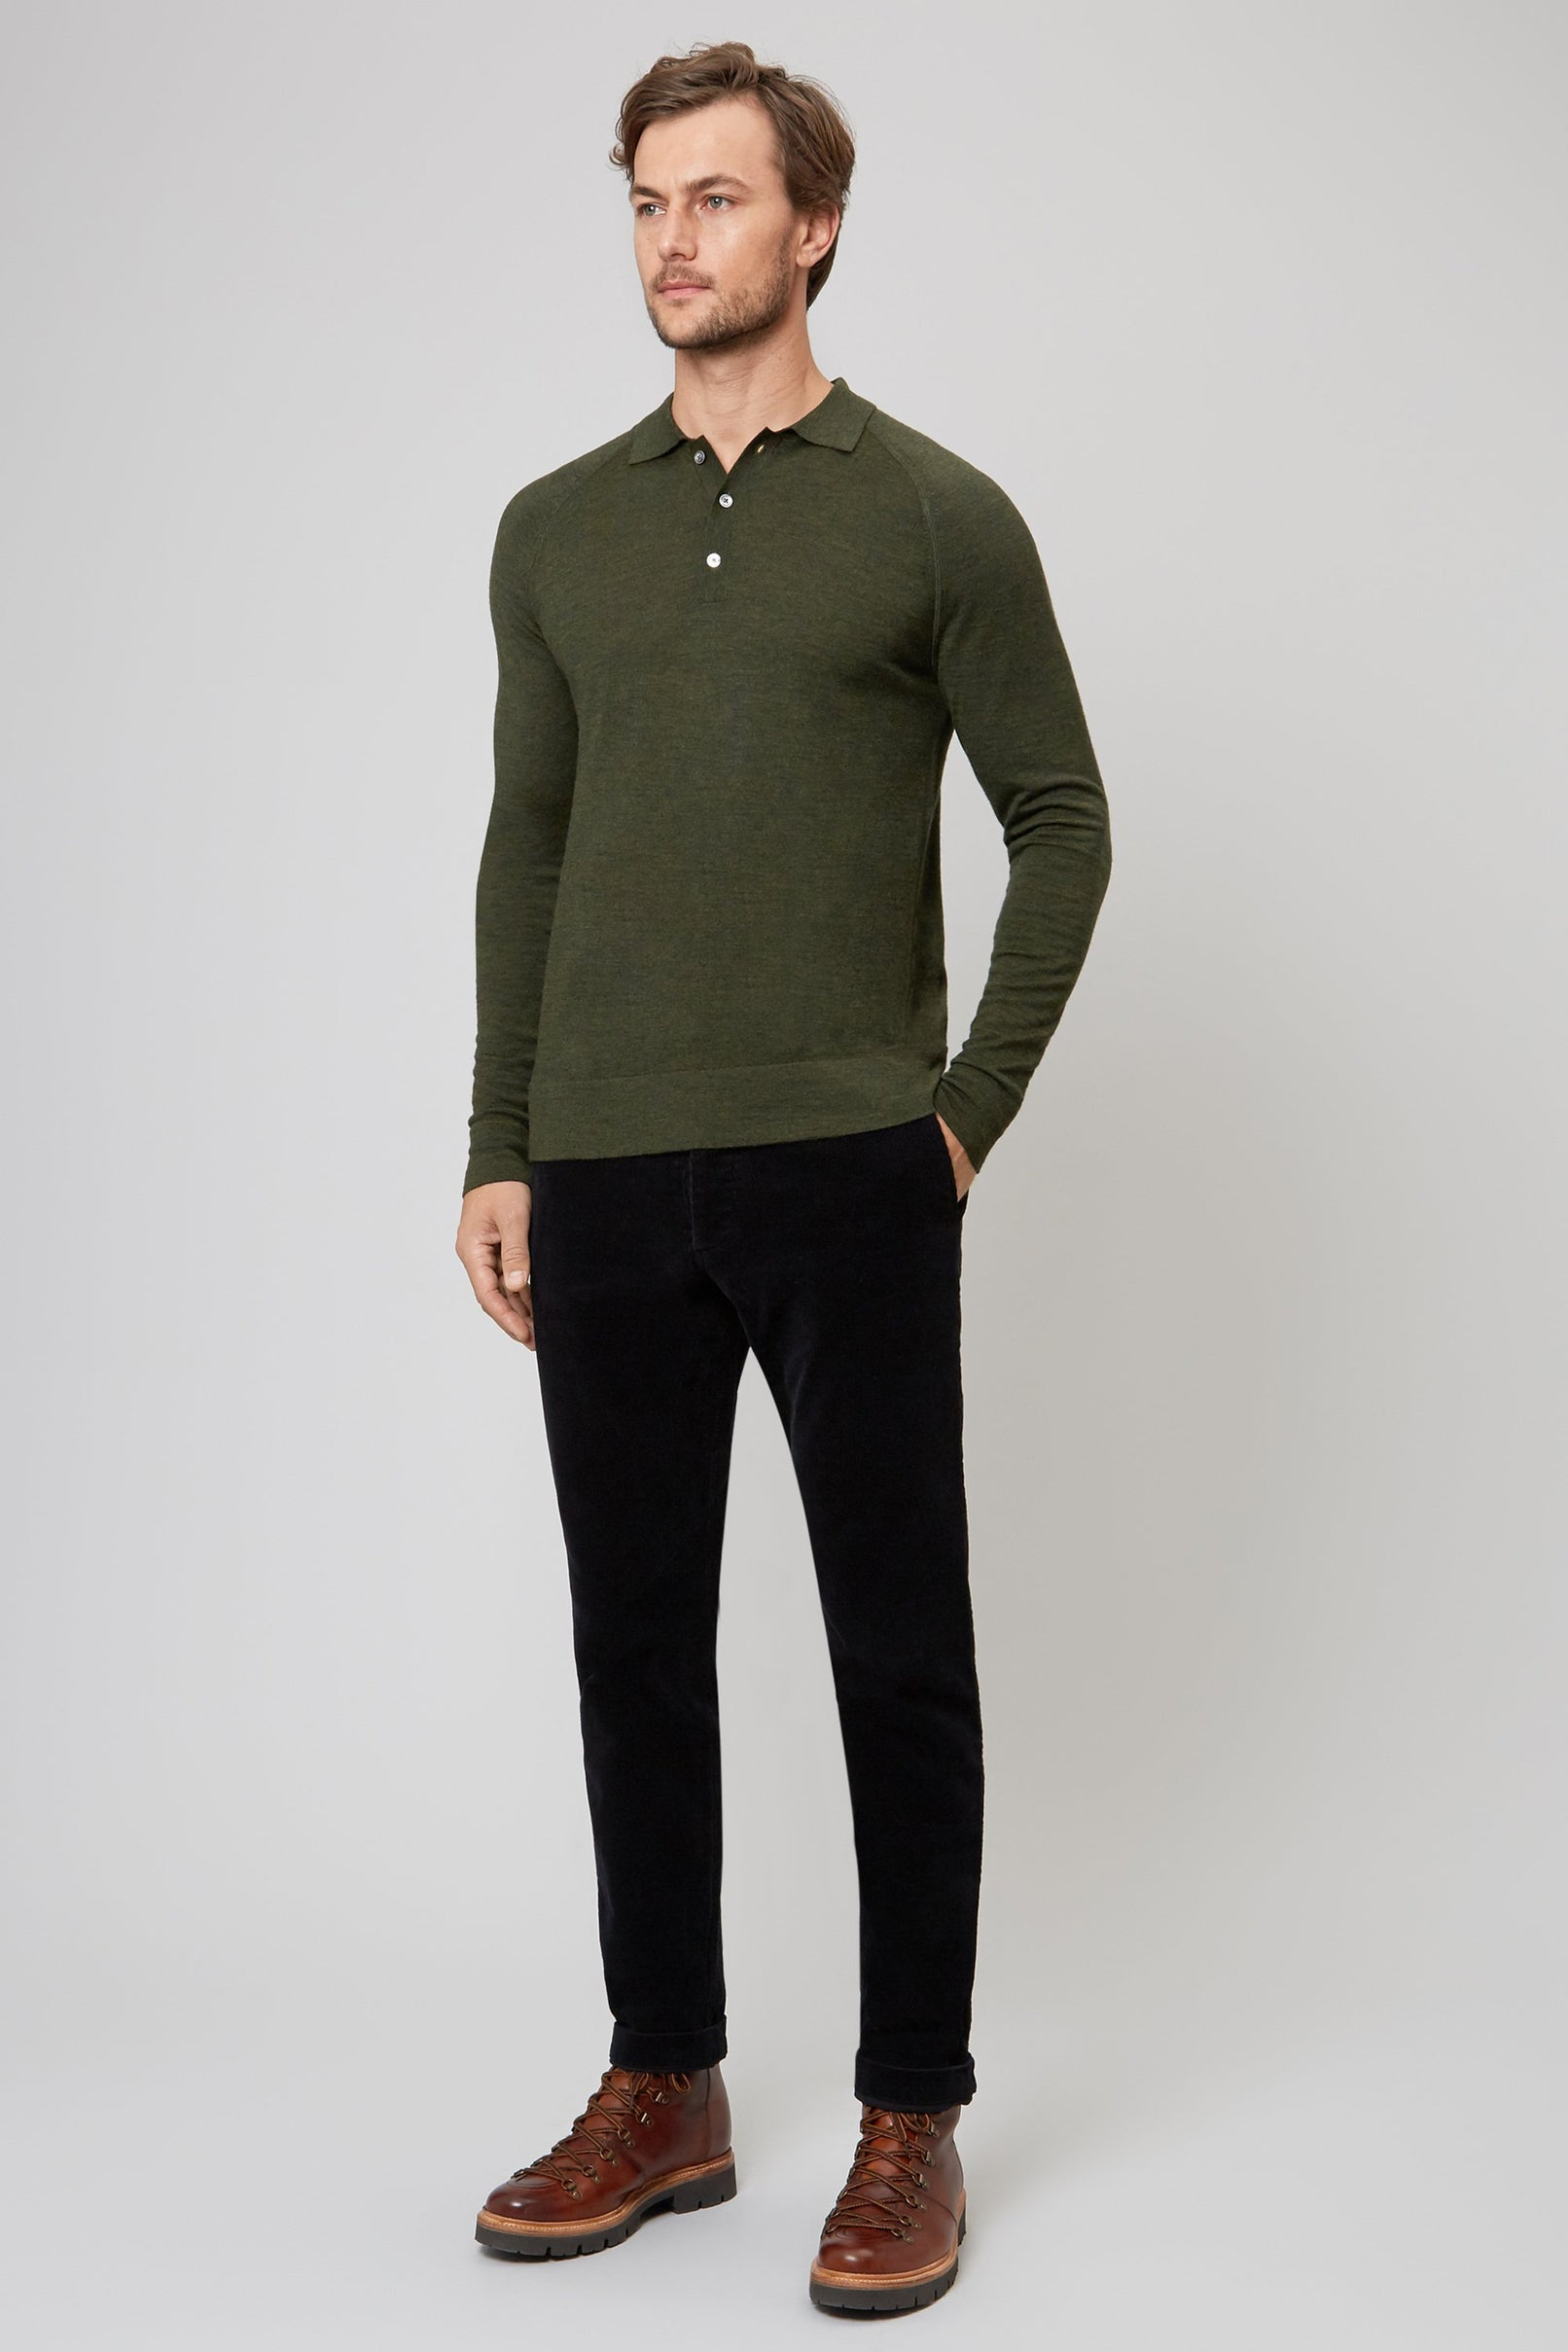 MILITARY MERINO WOOL RAGLAN POLO